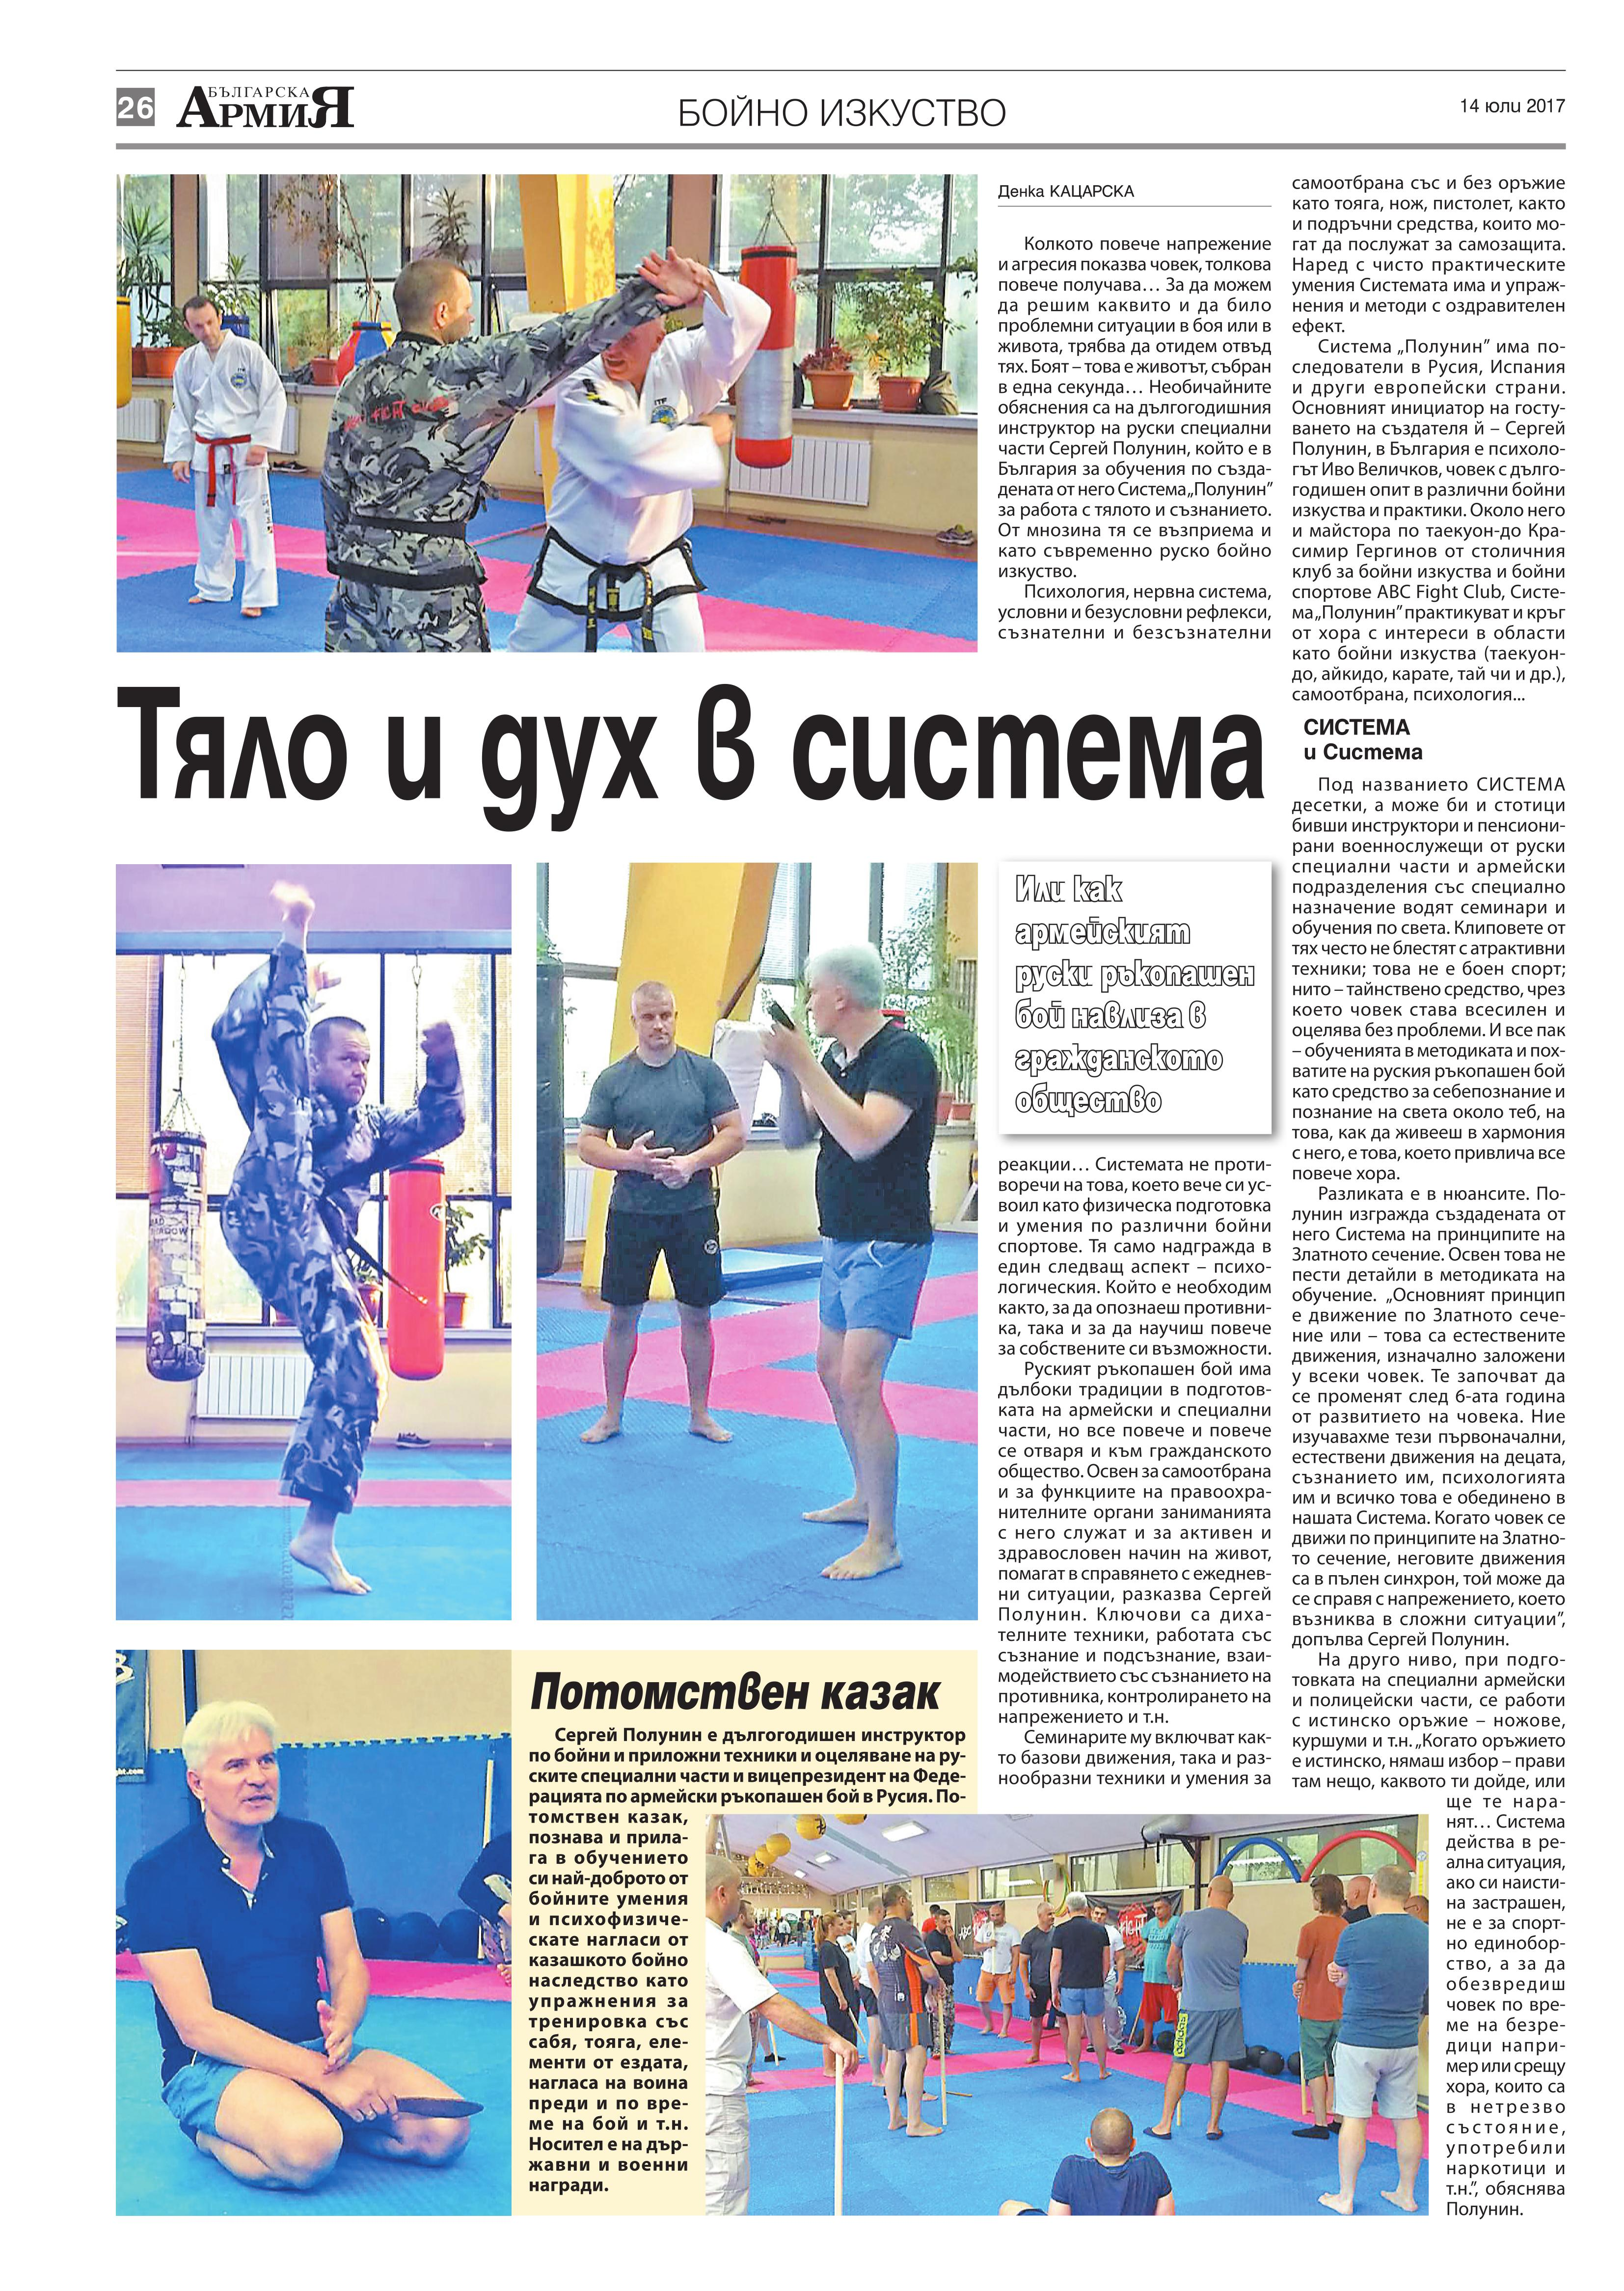 https://www.armymedia.bg/wp-content/uploads/2015/06/26.page1_-22.jpg